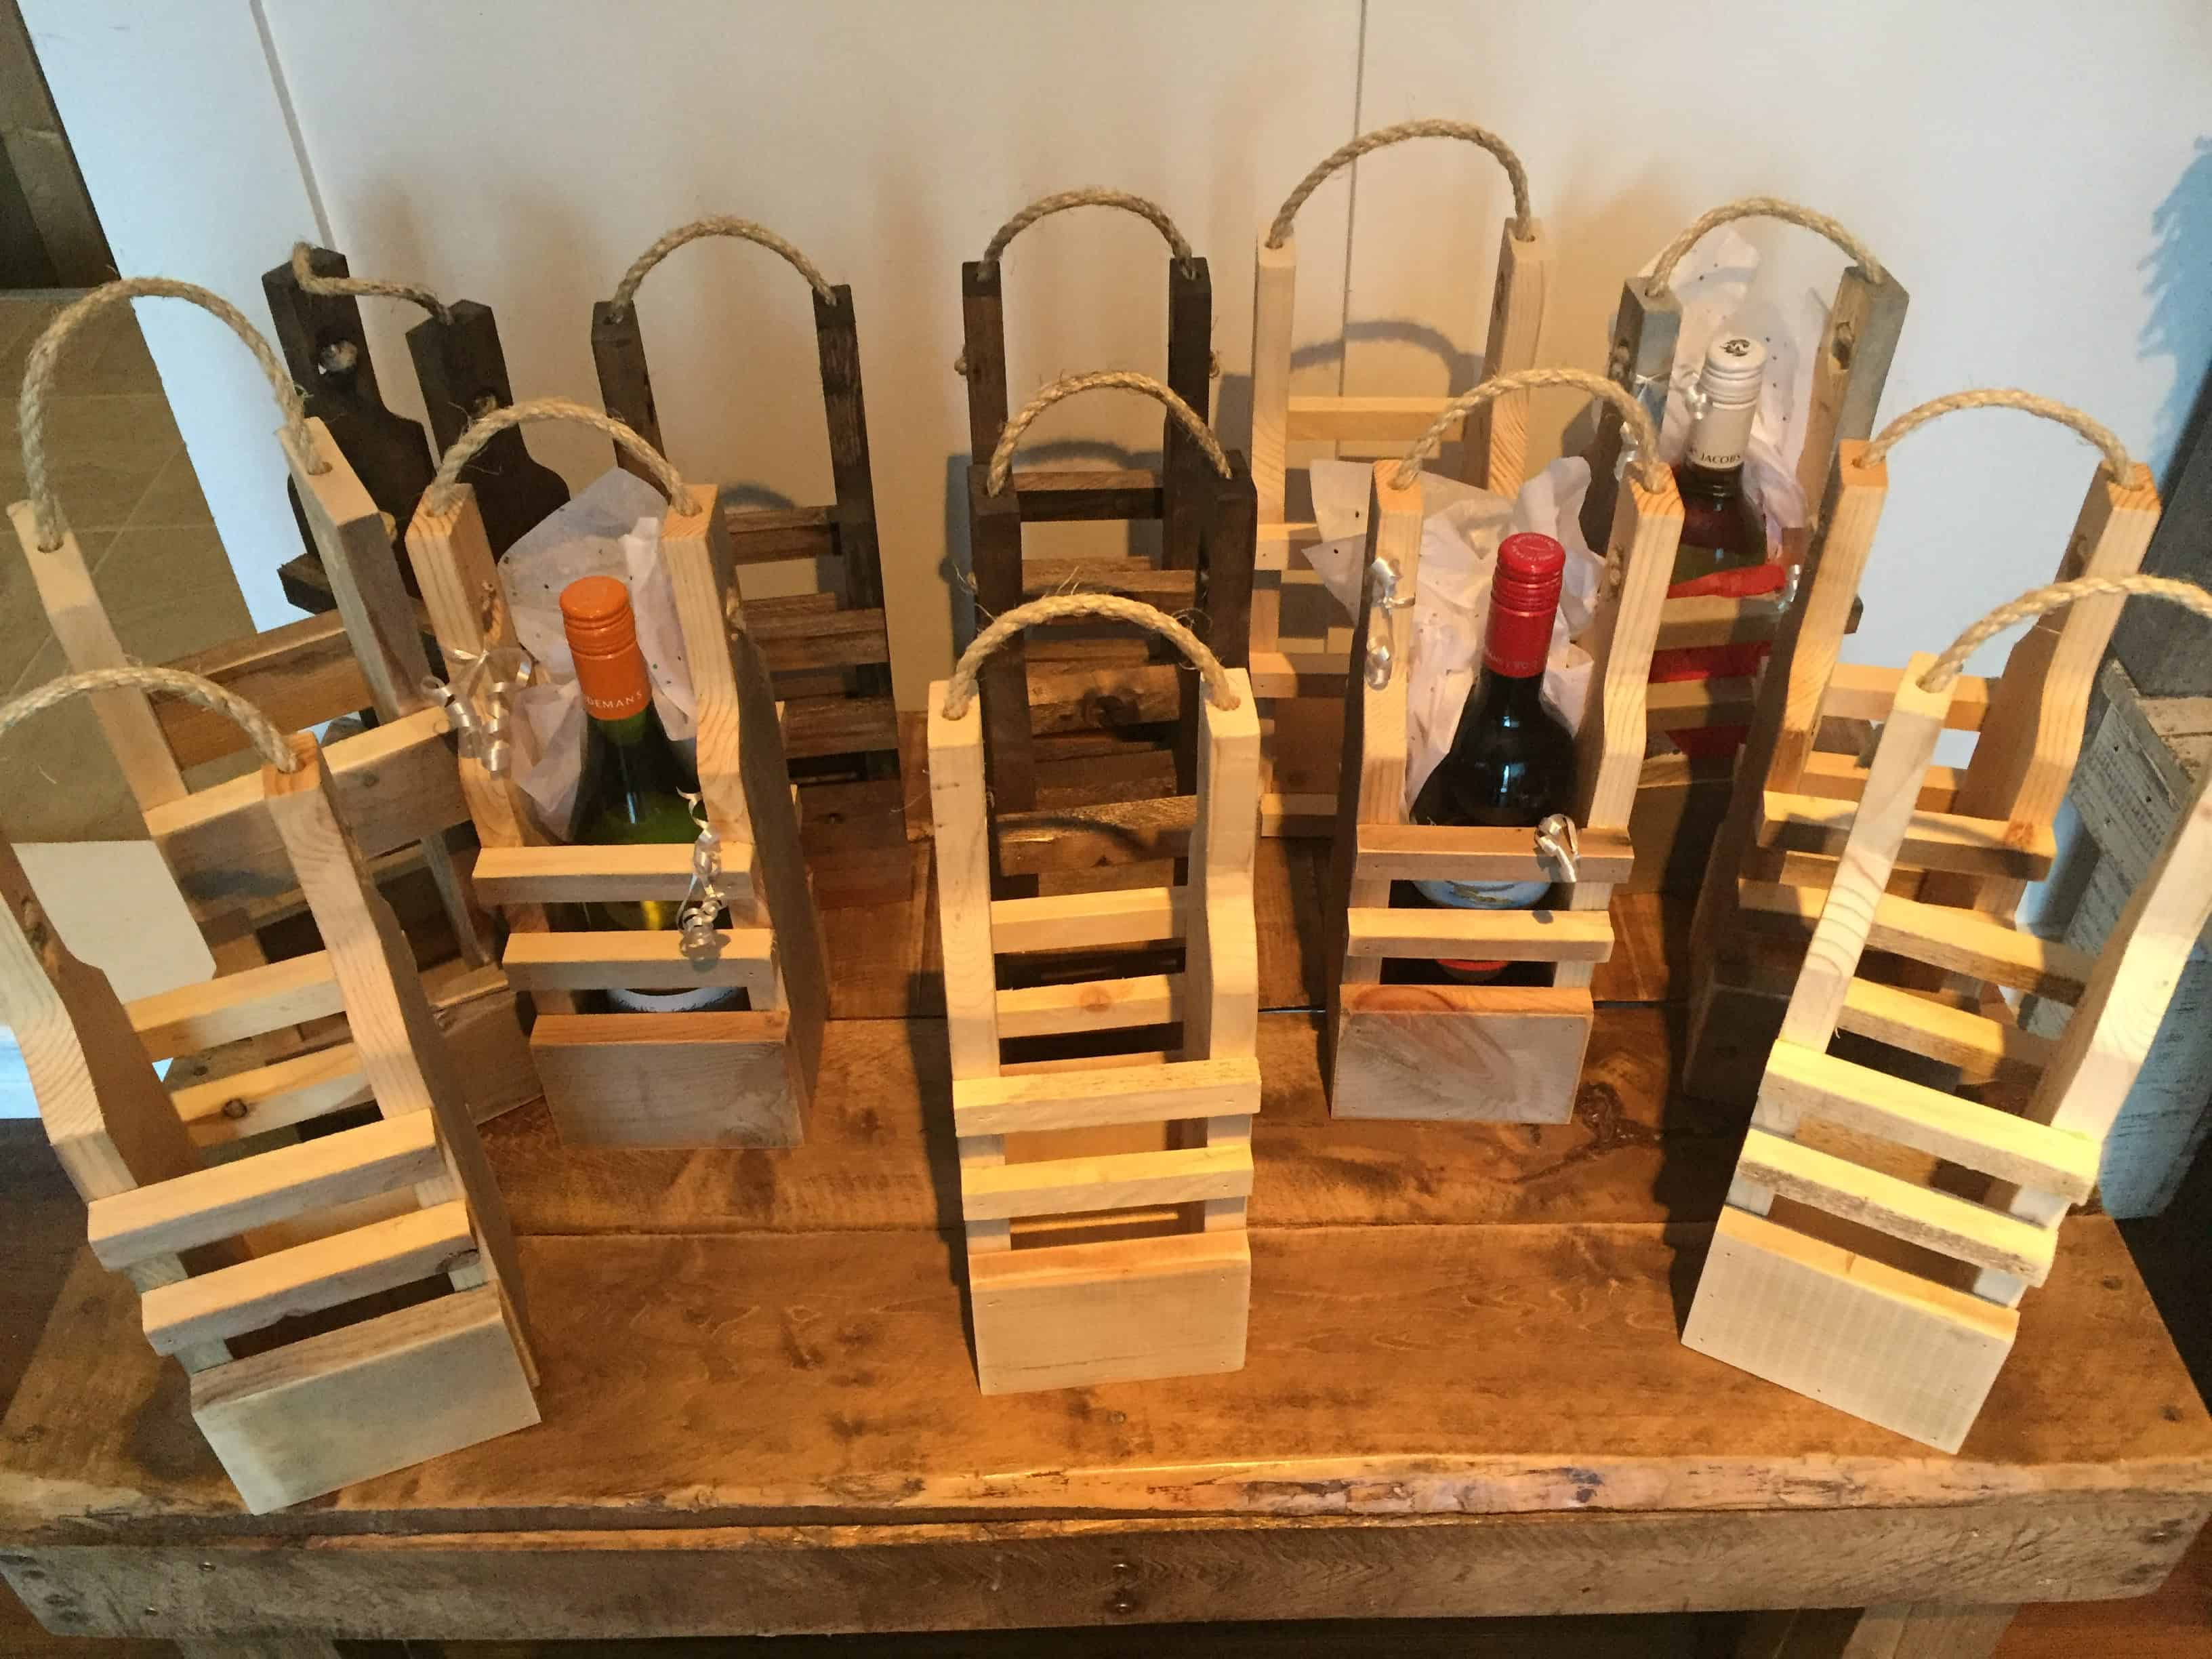 Best ideas about Pallet Gift Ideas . Save or Pin Rustic Pallet Wood Reusable Wine Gift Bags • 1001 Pallets Now.